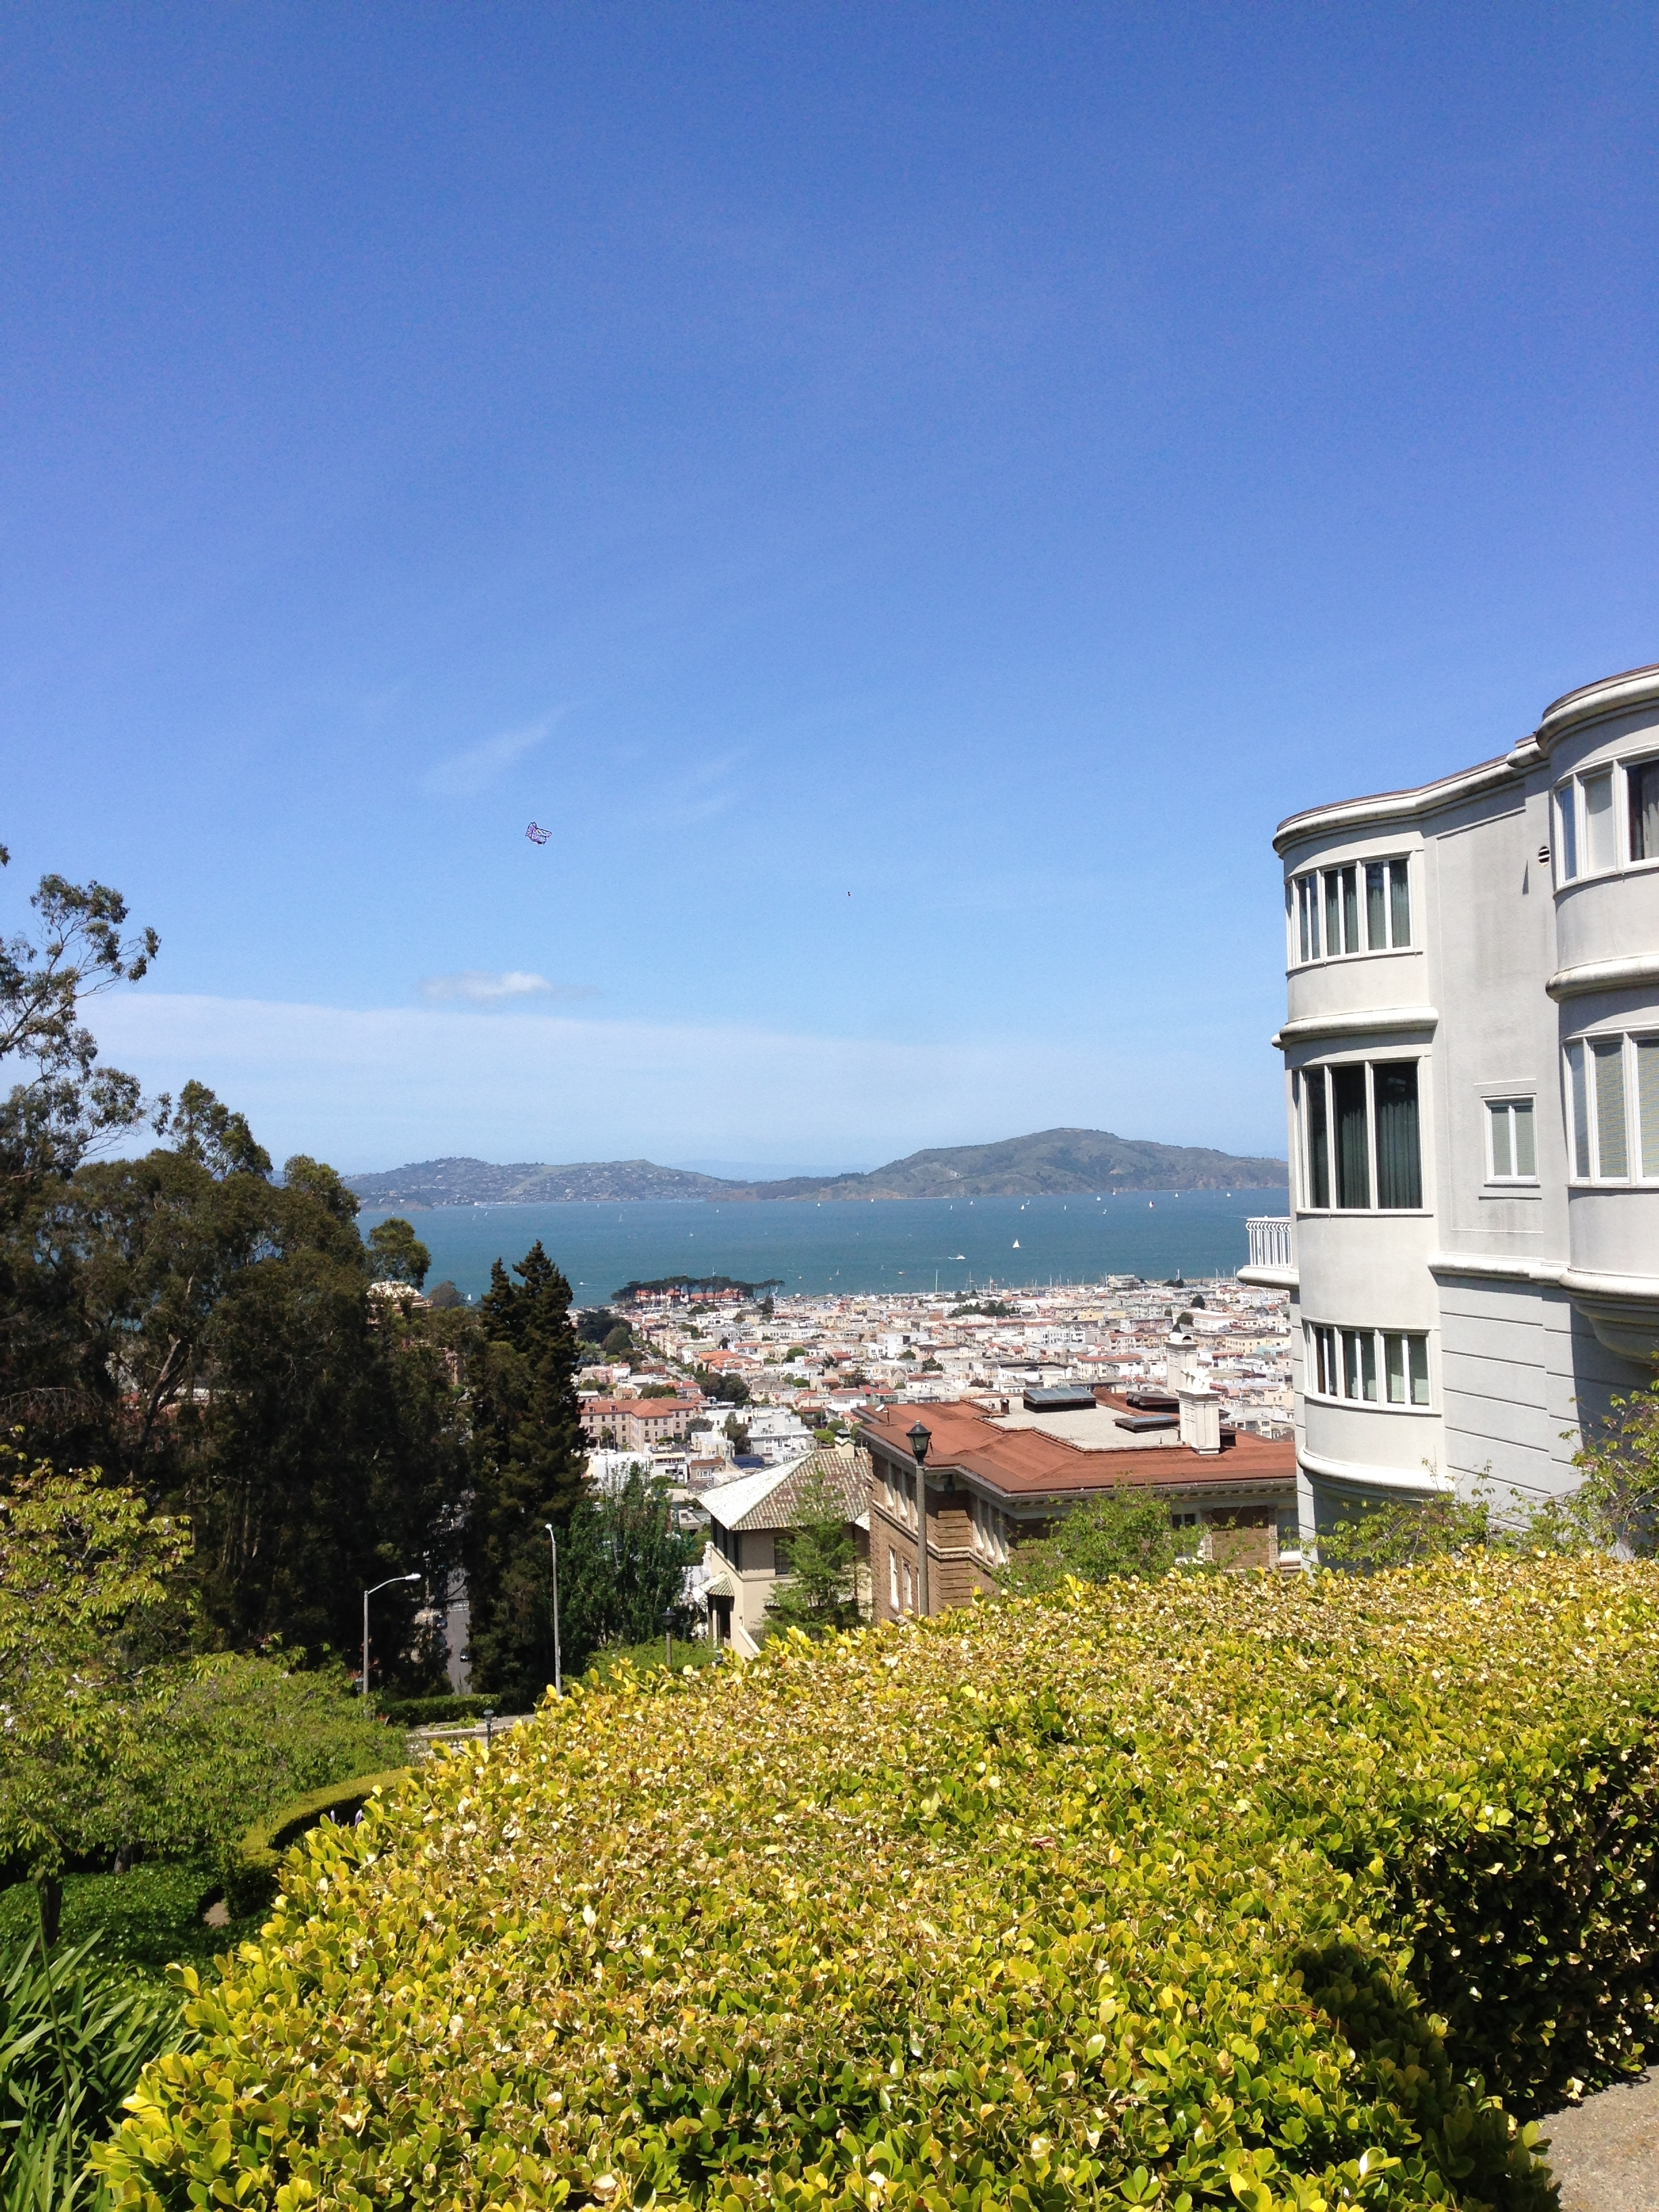 You know, just the view of the bay from our neighborhood.